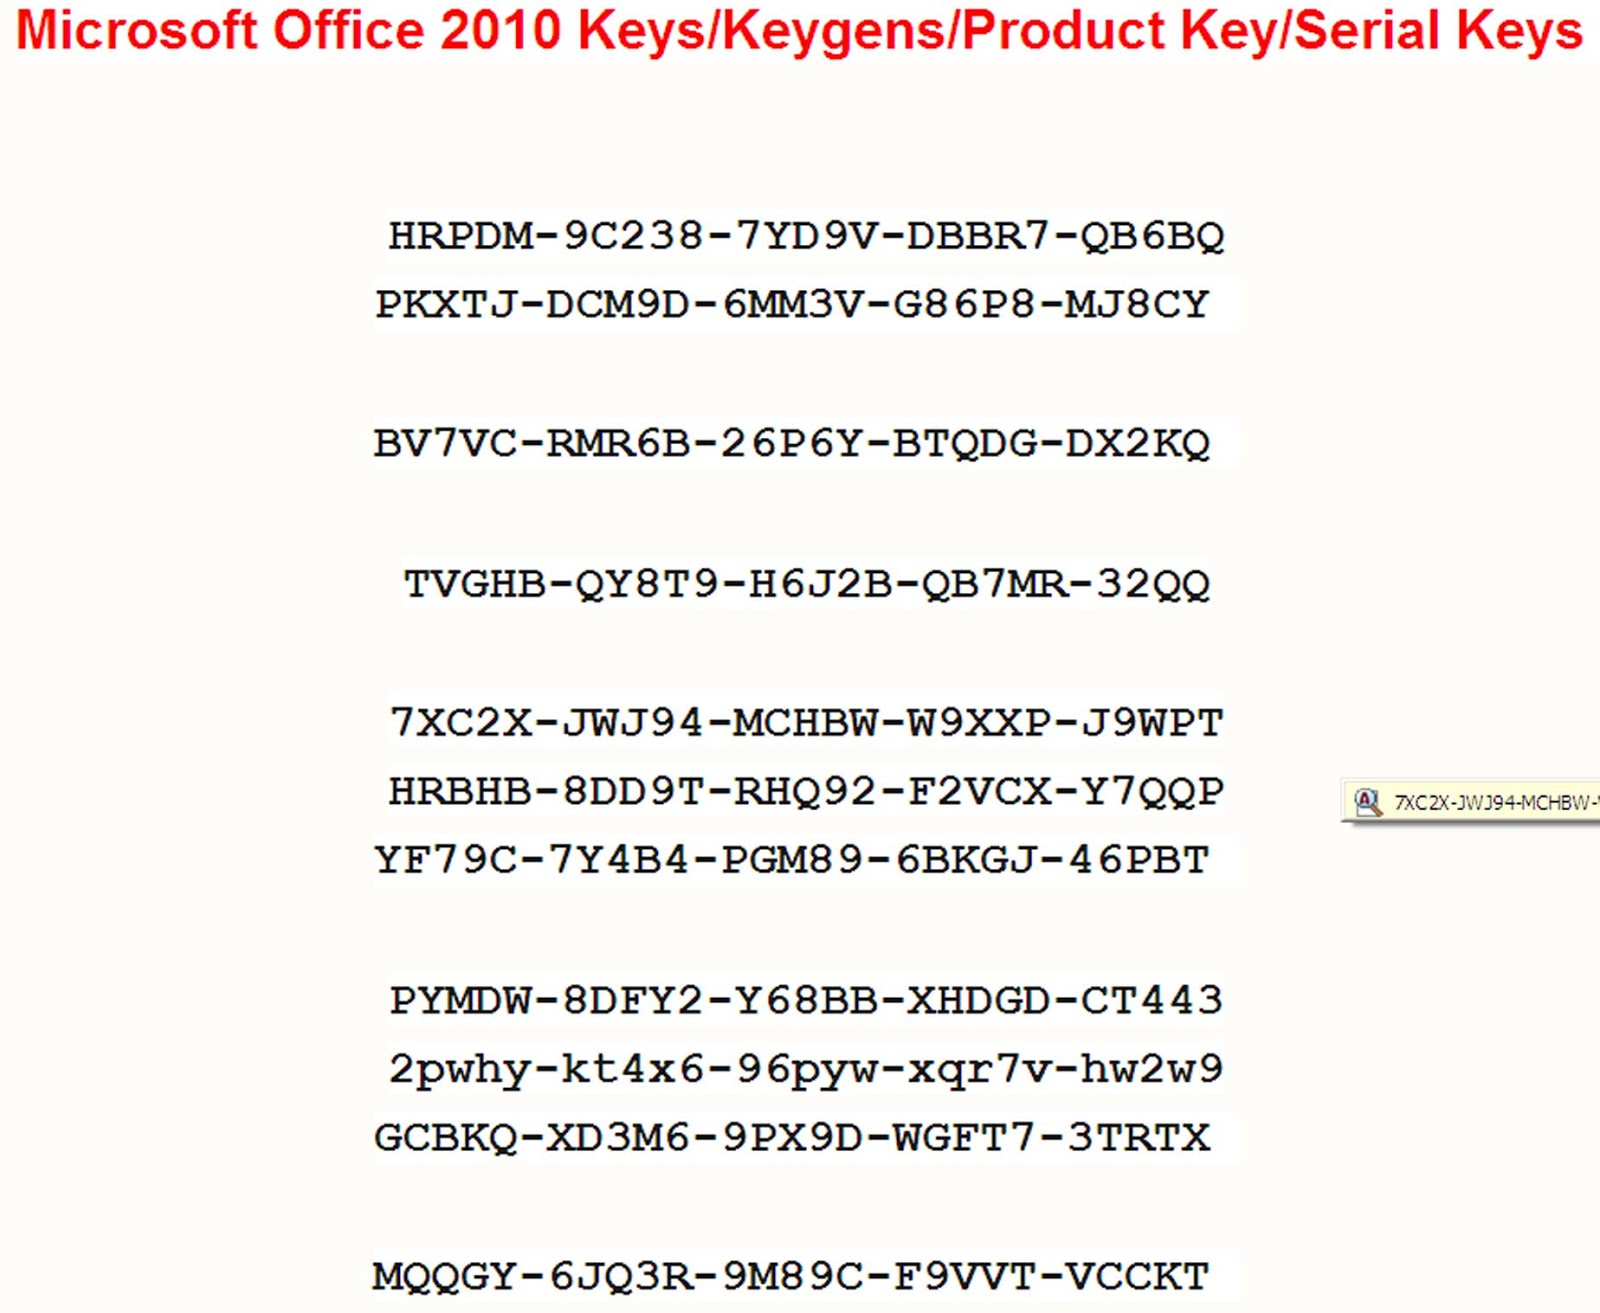 Microsoft word 2010 serial key - Office professional plus 2010 product key generator ...